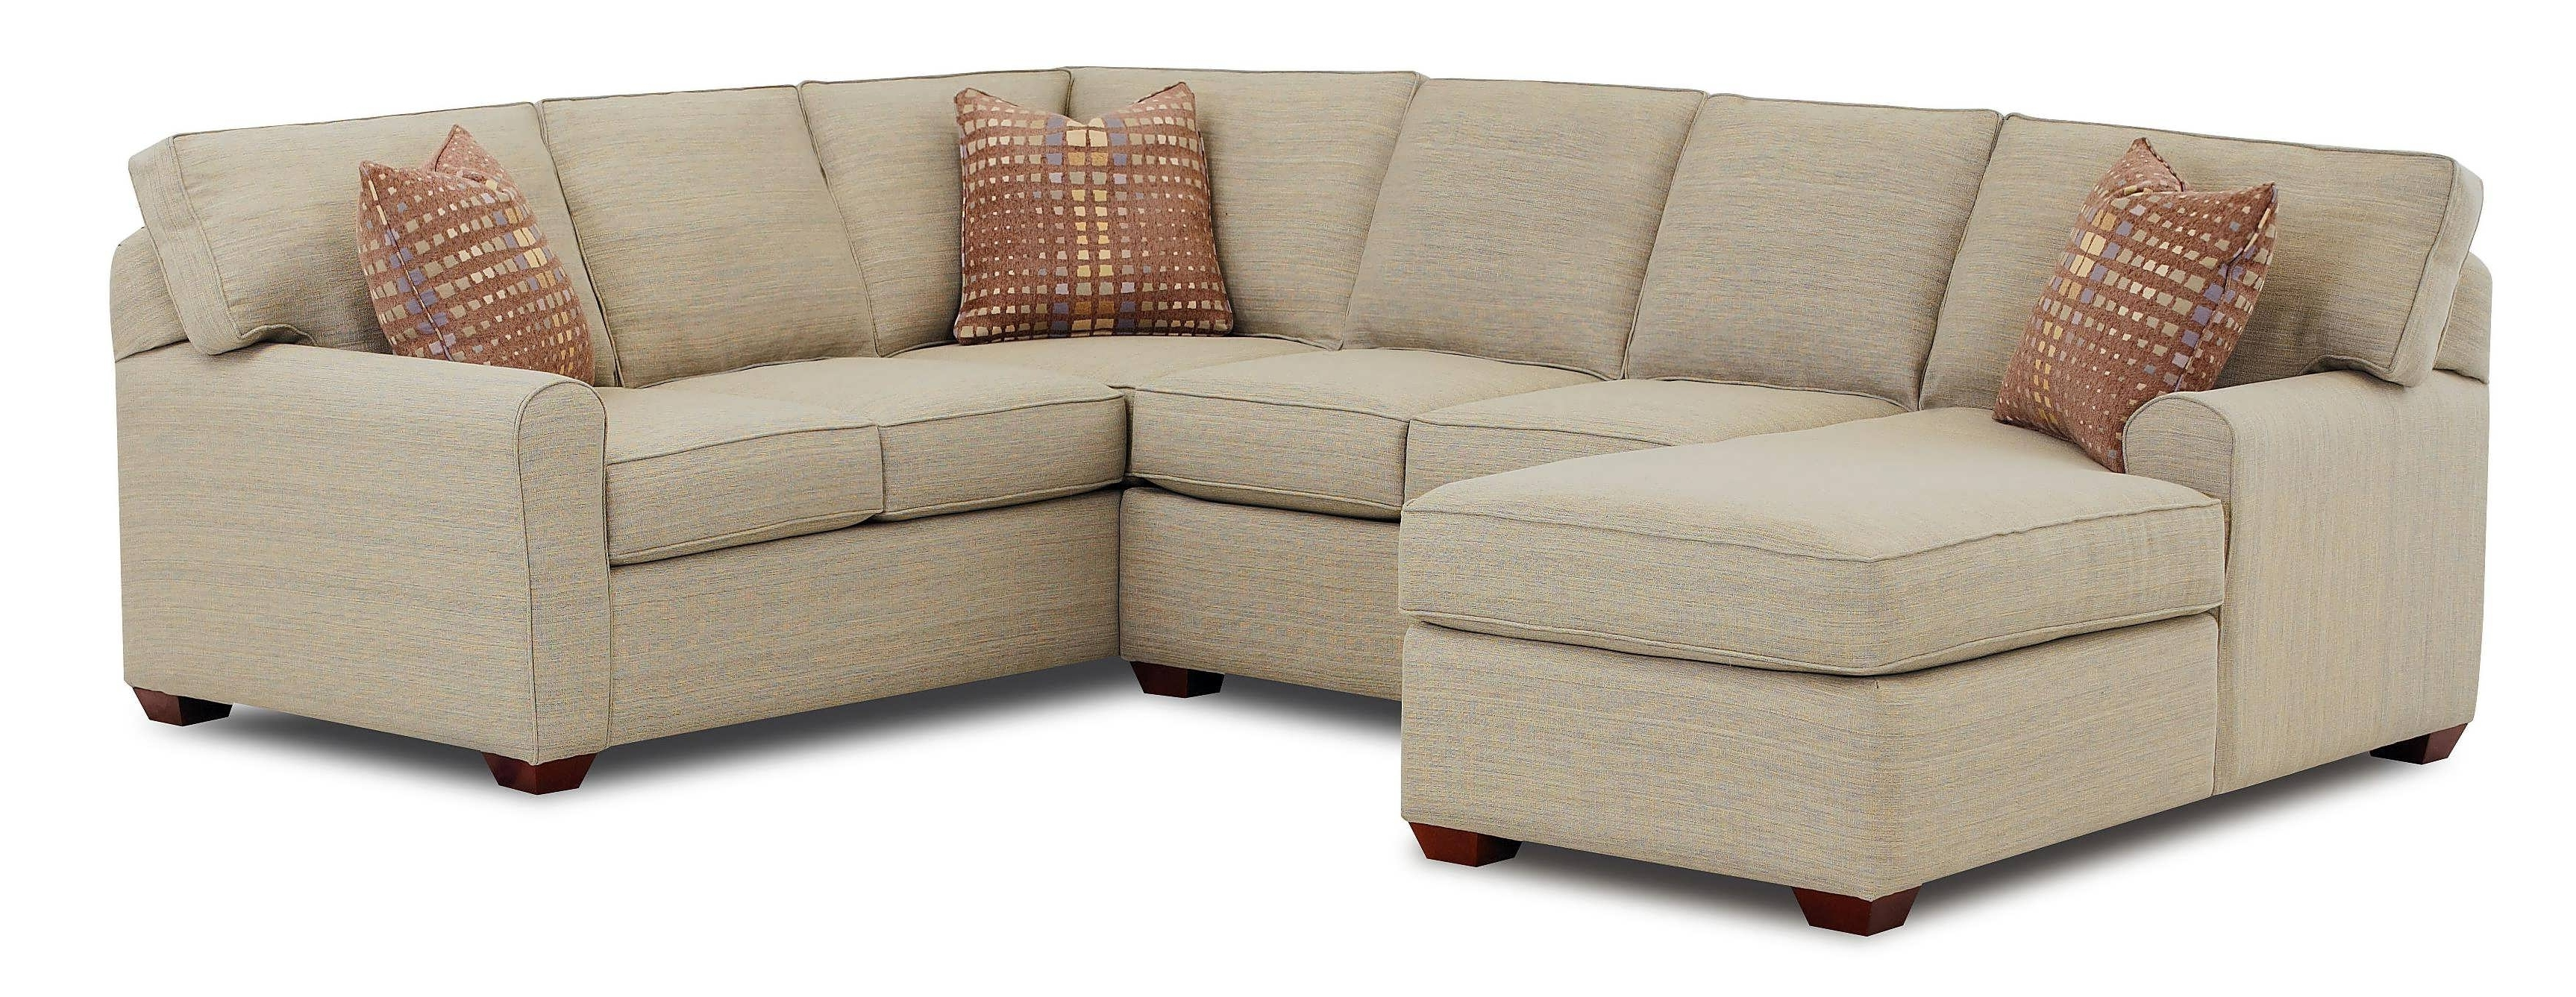 Chaise Lounge Sectional Sofas With Preferred Sofa : Gray Leather Sectional Large Chaise Lounge Sectional With (View 2 of 15)